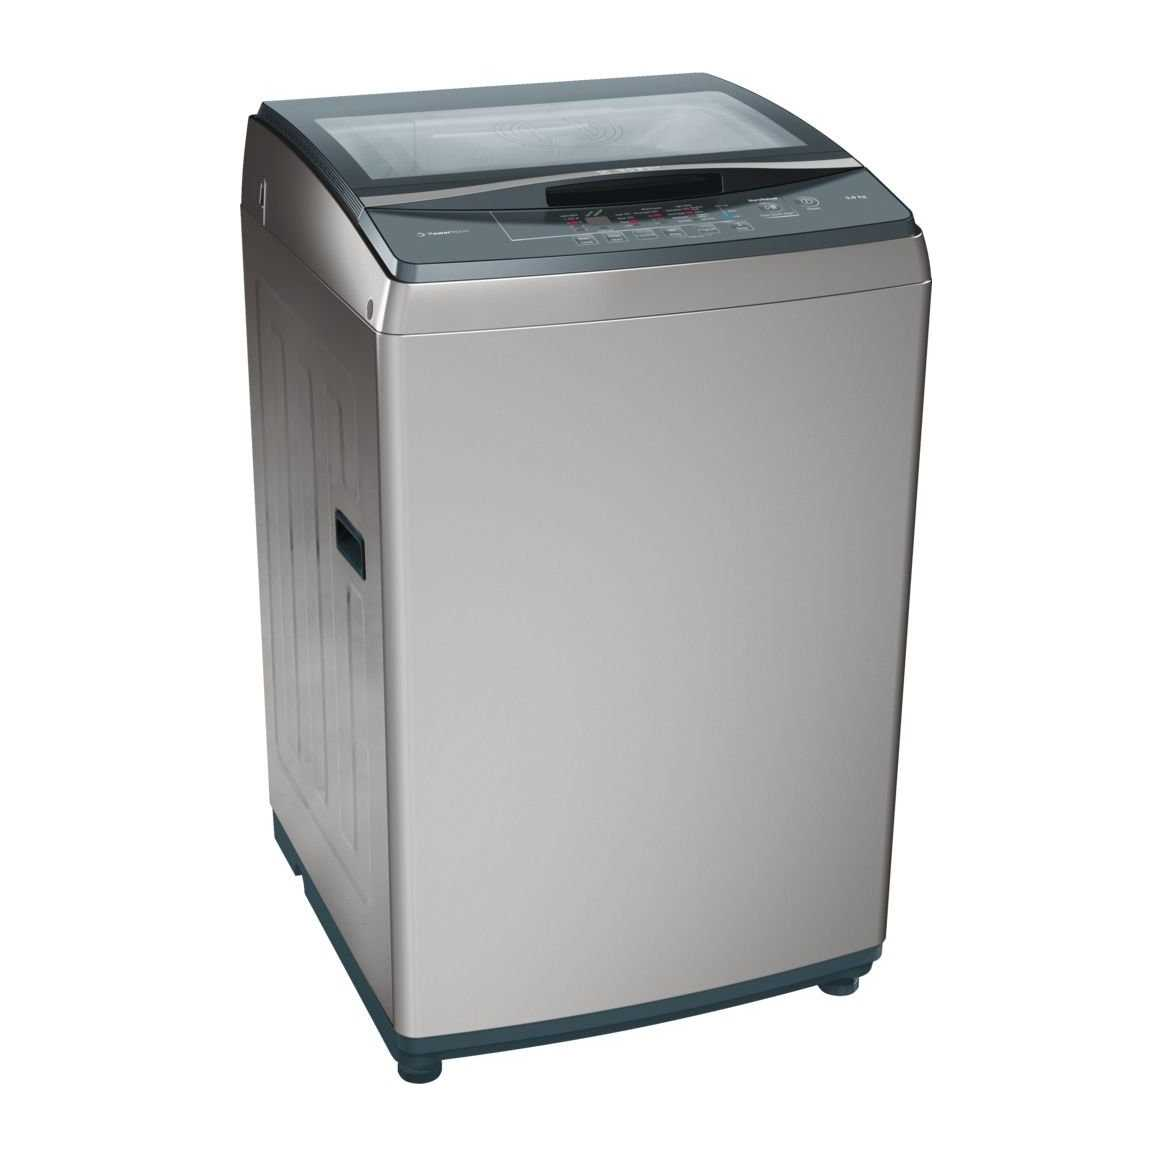 Bosch WOE704W0IN 7 Kg Fully Automatic Top Loading Washing Machine